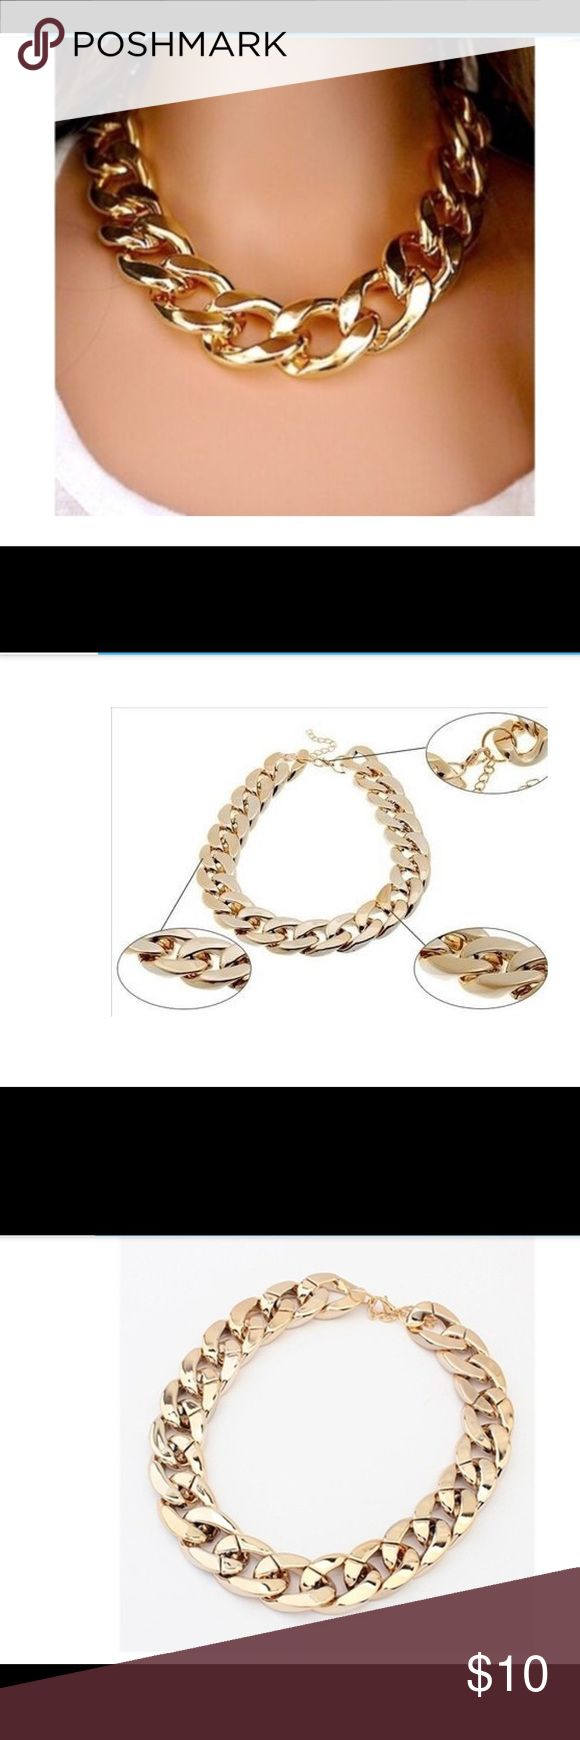 fashion chain necklace Gold toned. Plastic feel. fashion Thick necklace chain necklace Jewelry Necklaces